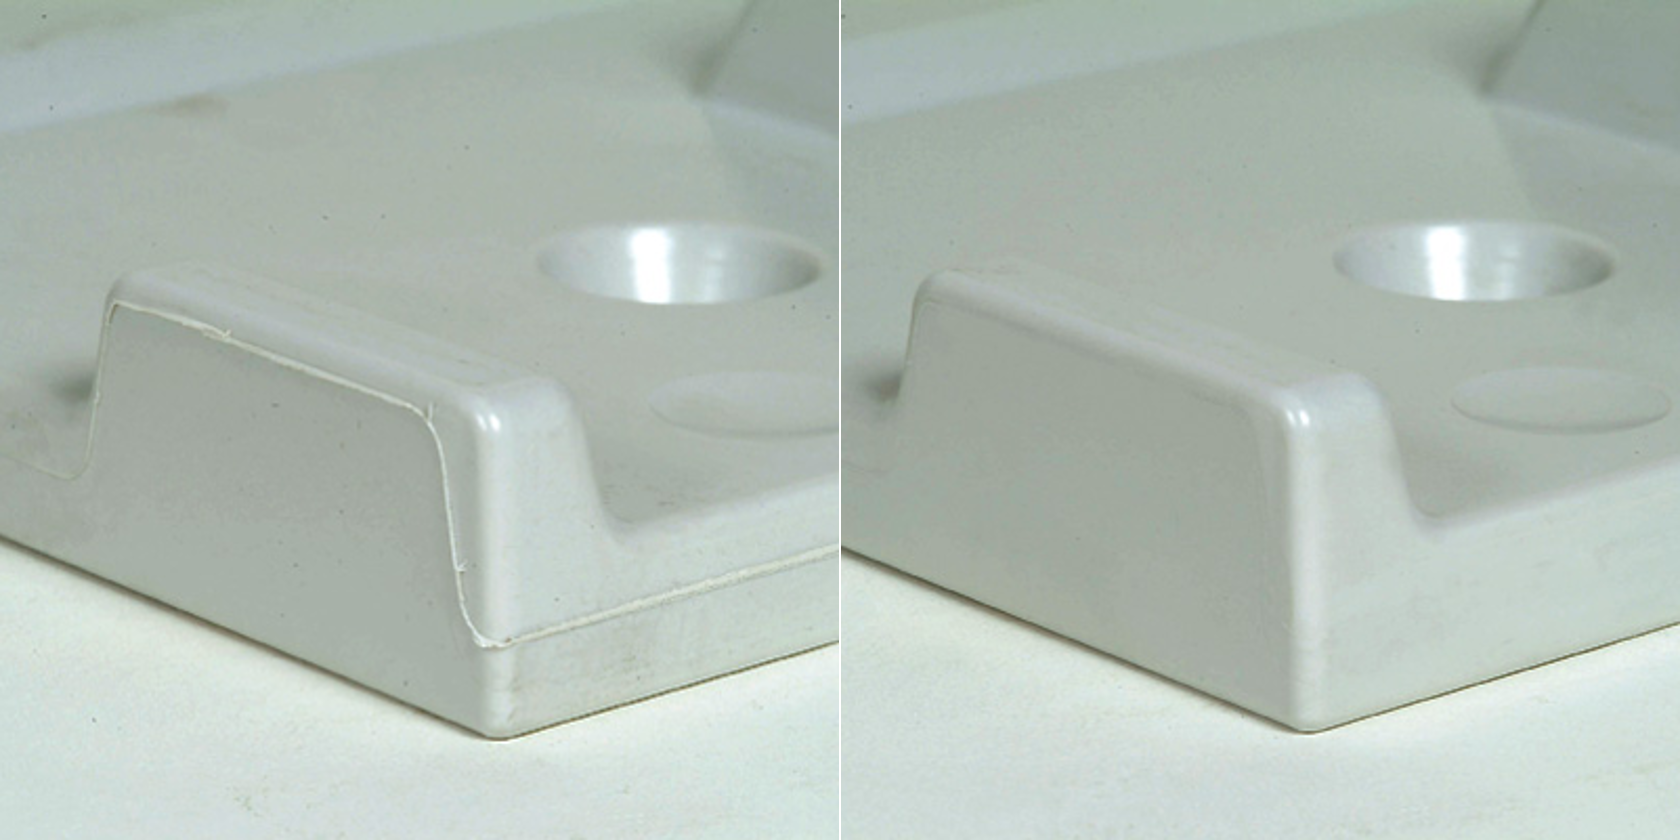 Nihon Shoryoku Kikai Uses Reverse Thinking to Reduce Plastic Molding Costs